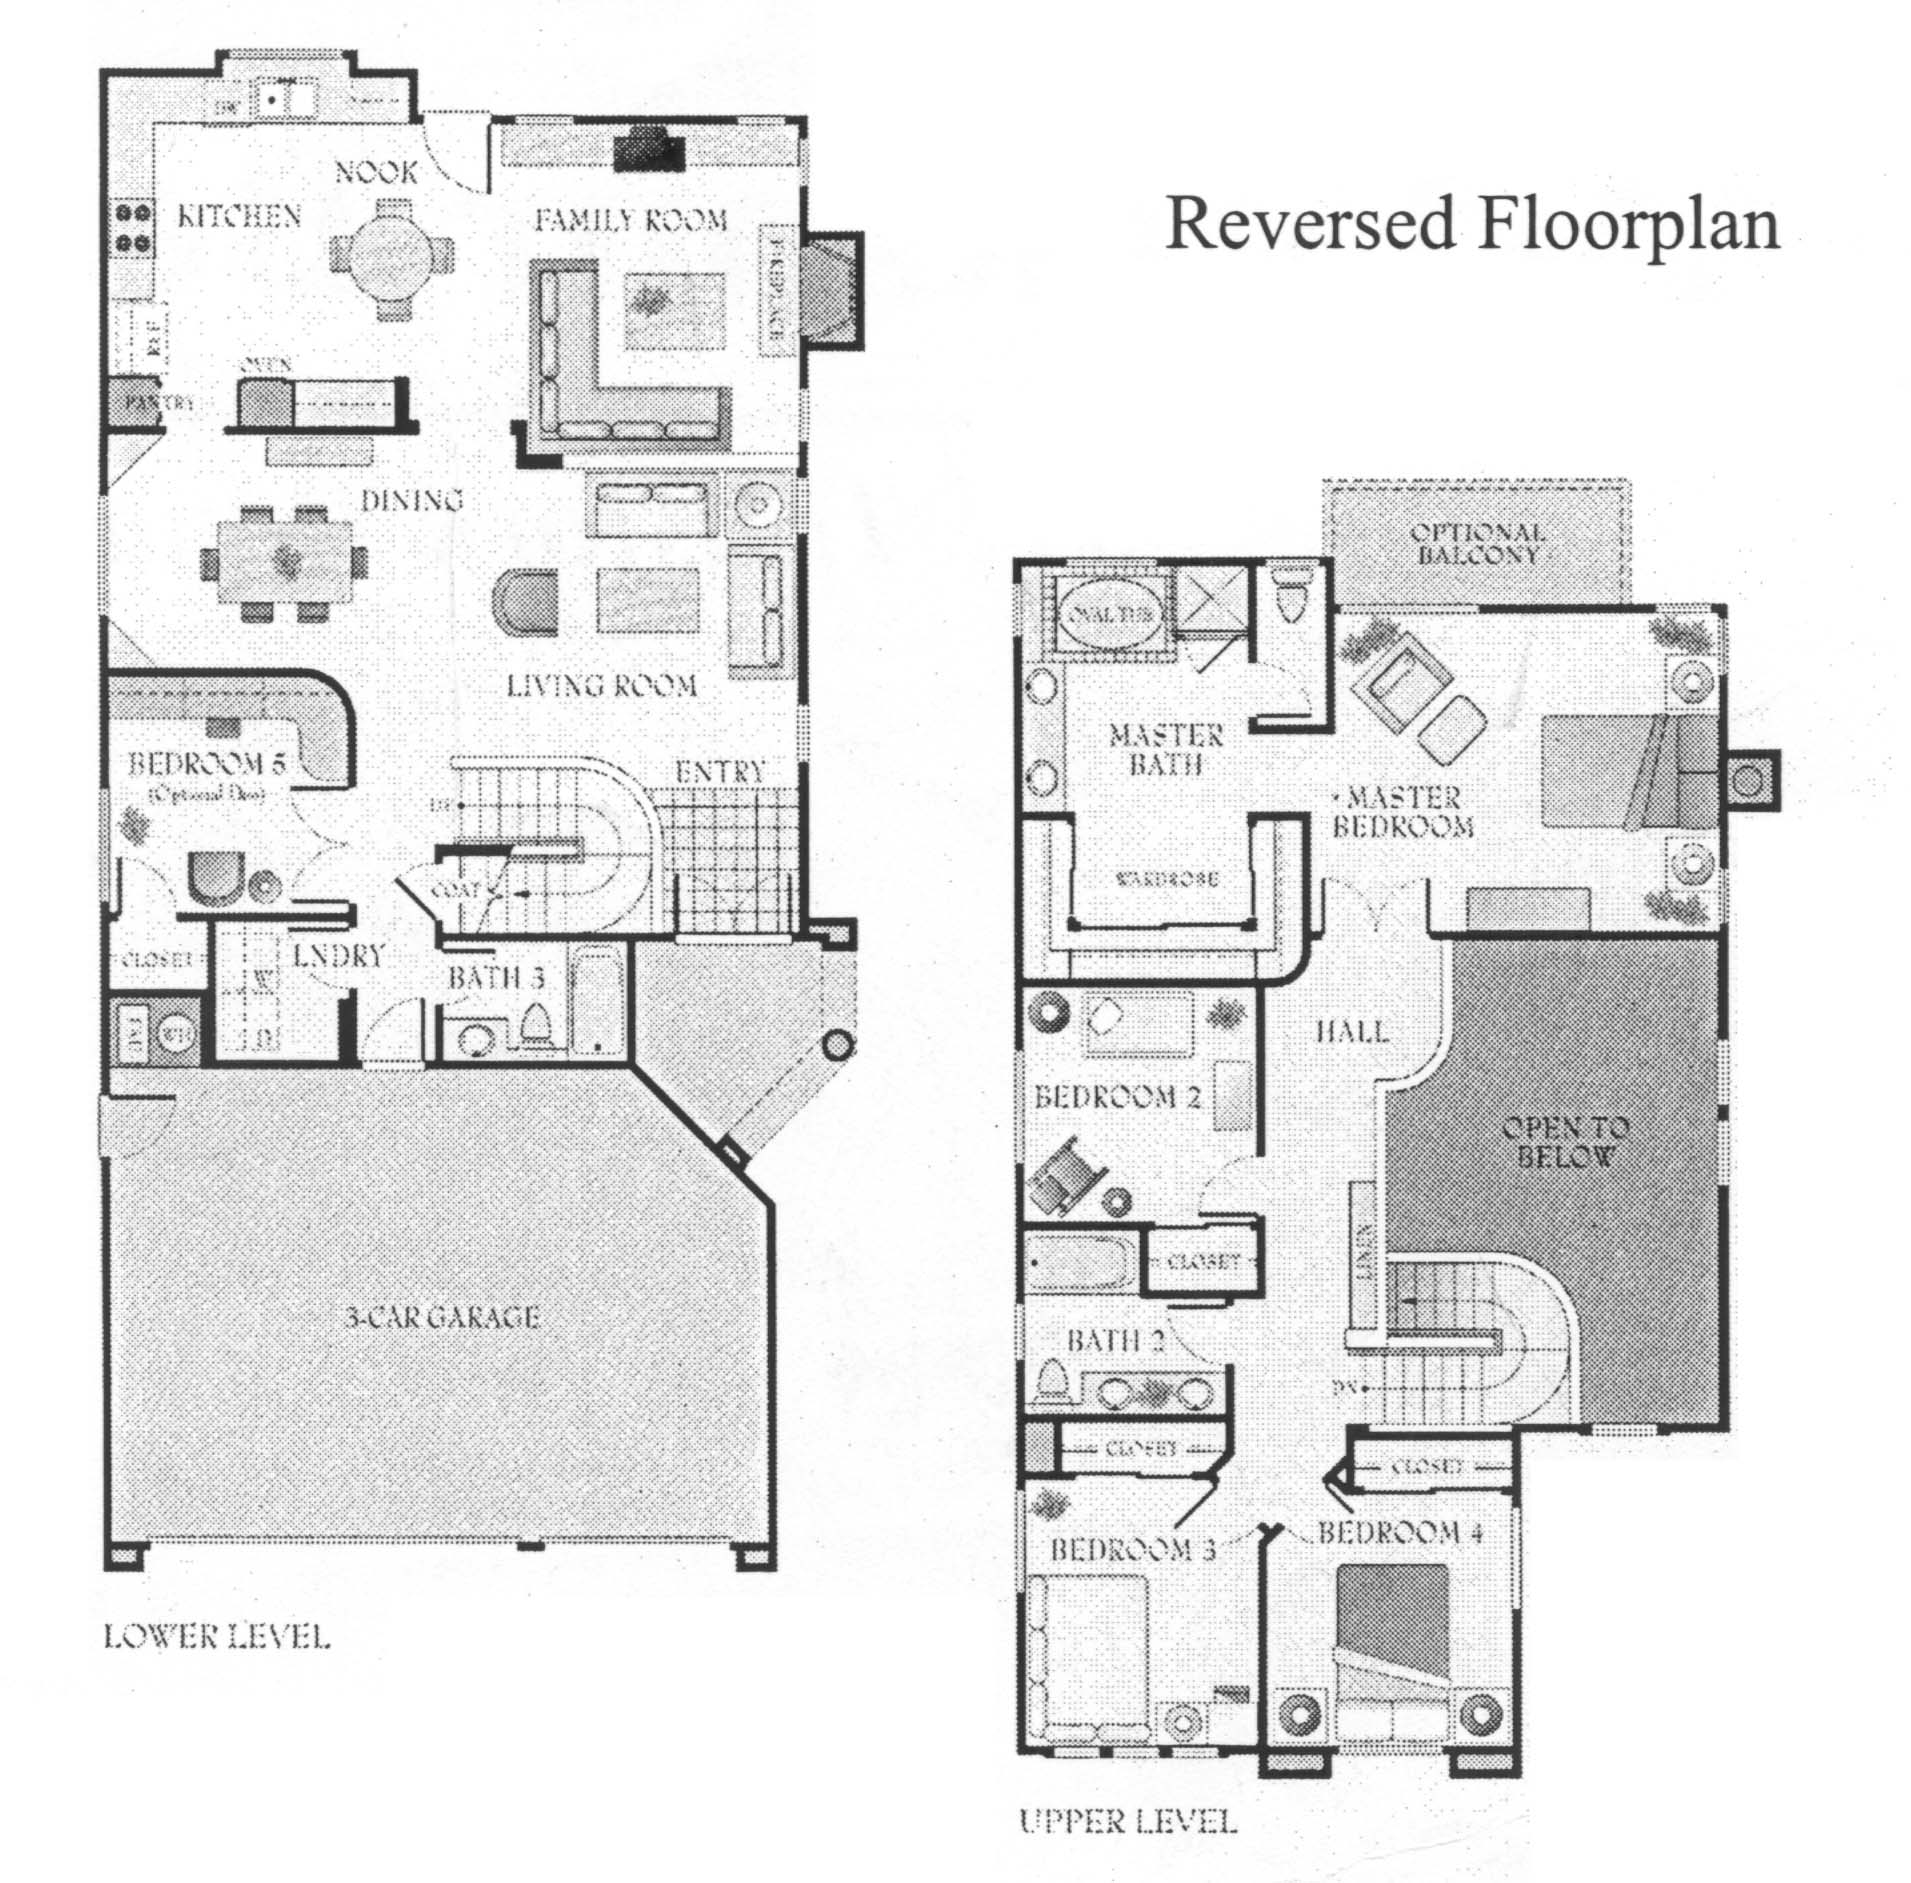 Master bath floor plans best layout room Bathroom floor plans